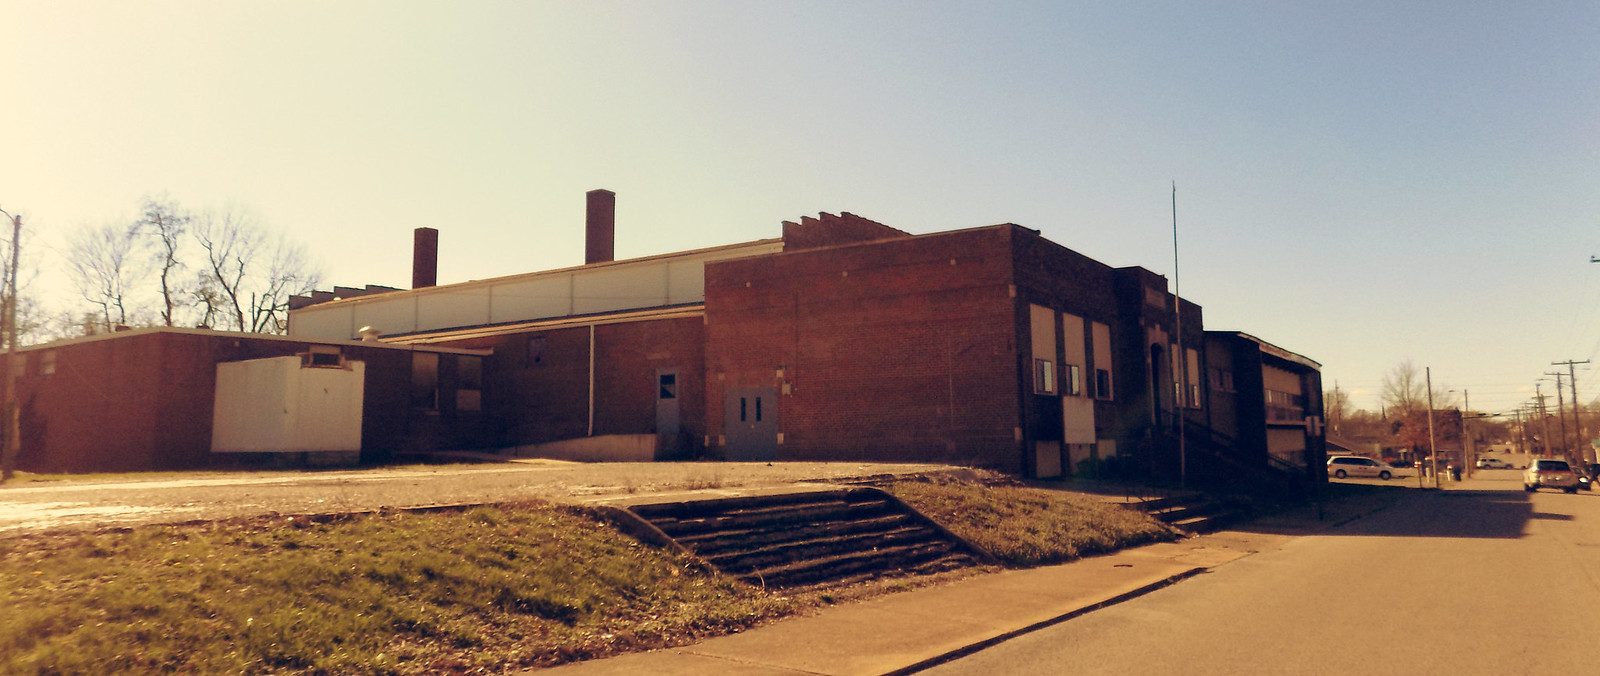 Booker T Washington Elementary -- Hopkinsville, Kentucky